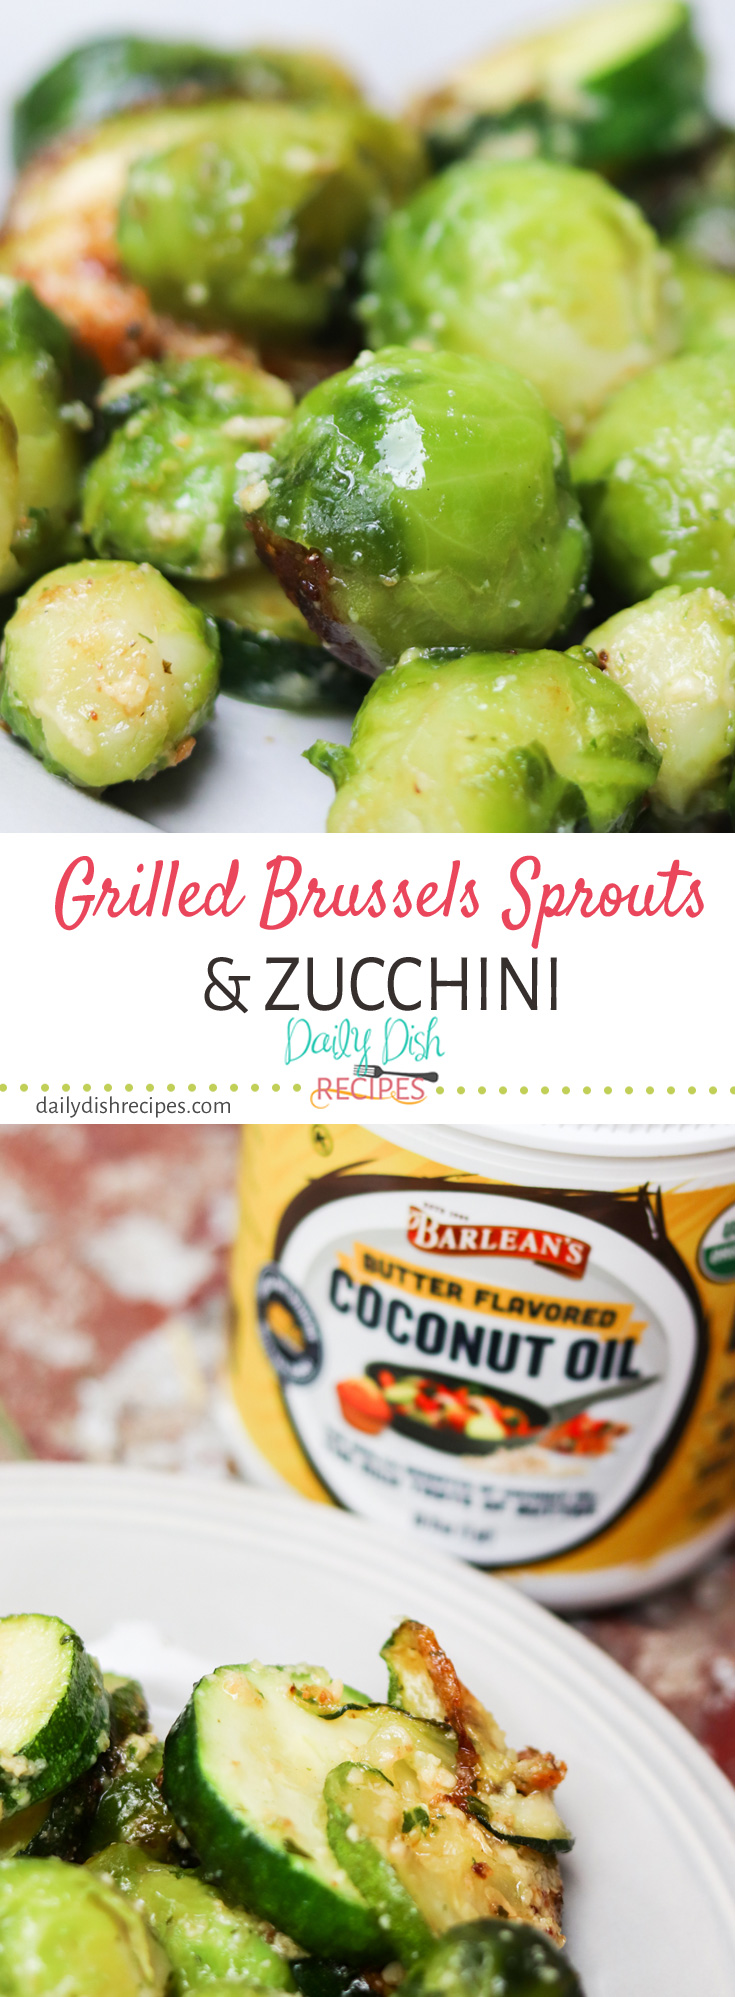 Need an easy side dish to feed a crowd at your next summer party? Flavorful Grilled Brussels Sprouts and Zucchini is the perfect side dish for you next Cookout, BBQ, Picnic or Backyard Pool Party.